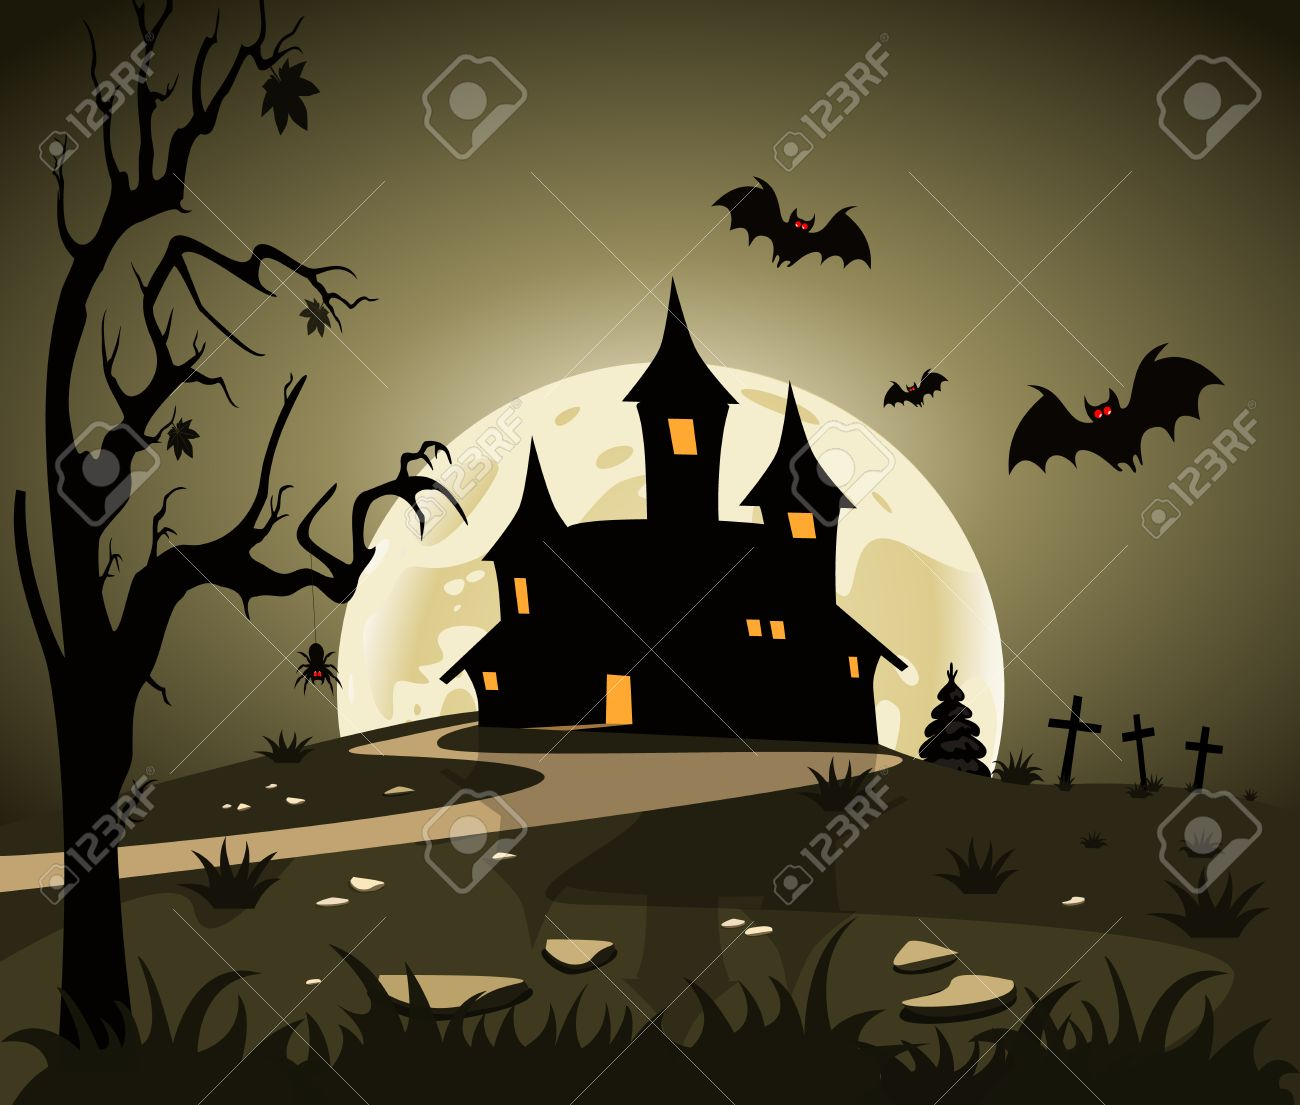 Halloween Theme From The Castle In The Background Royalty Free ...